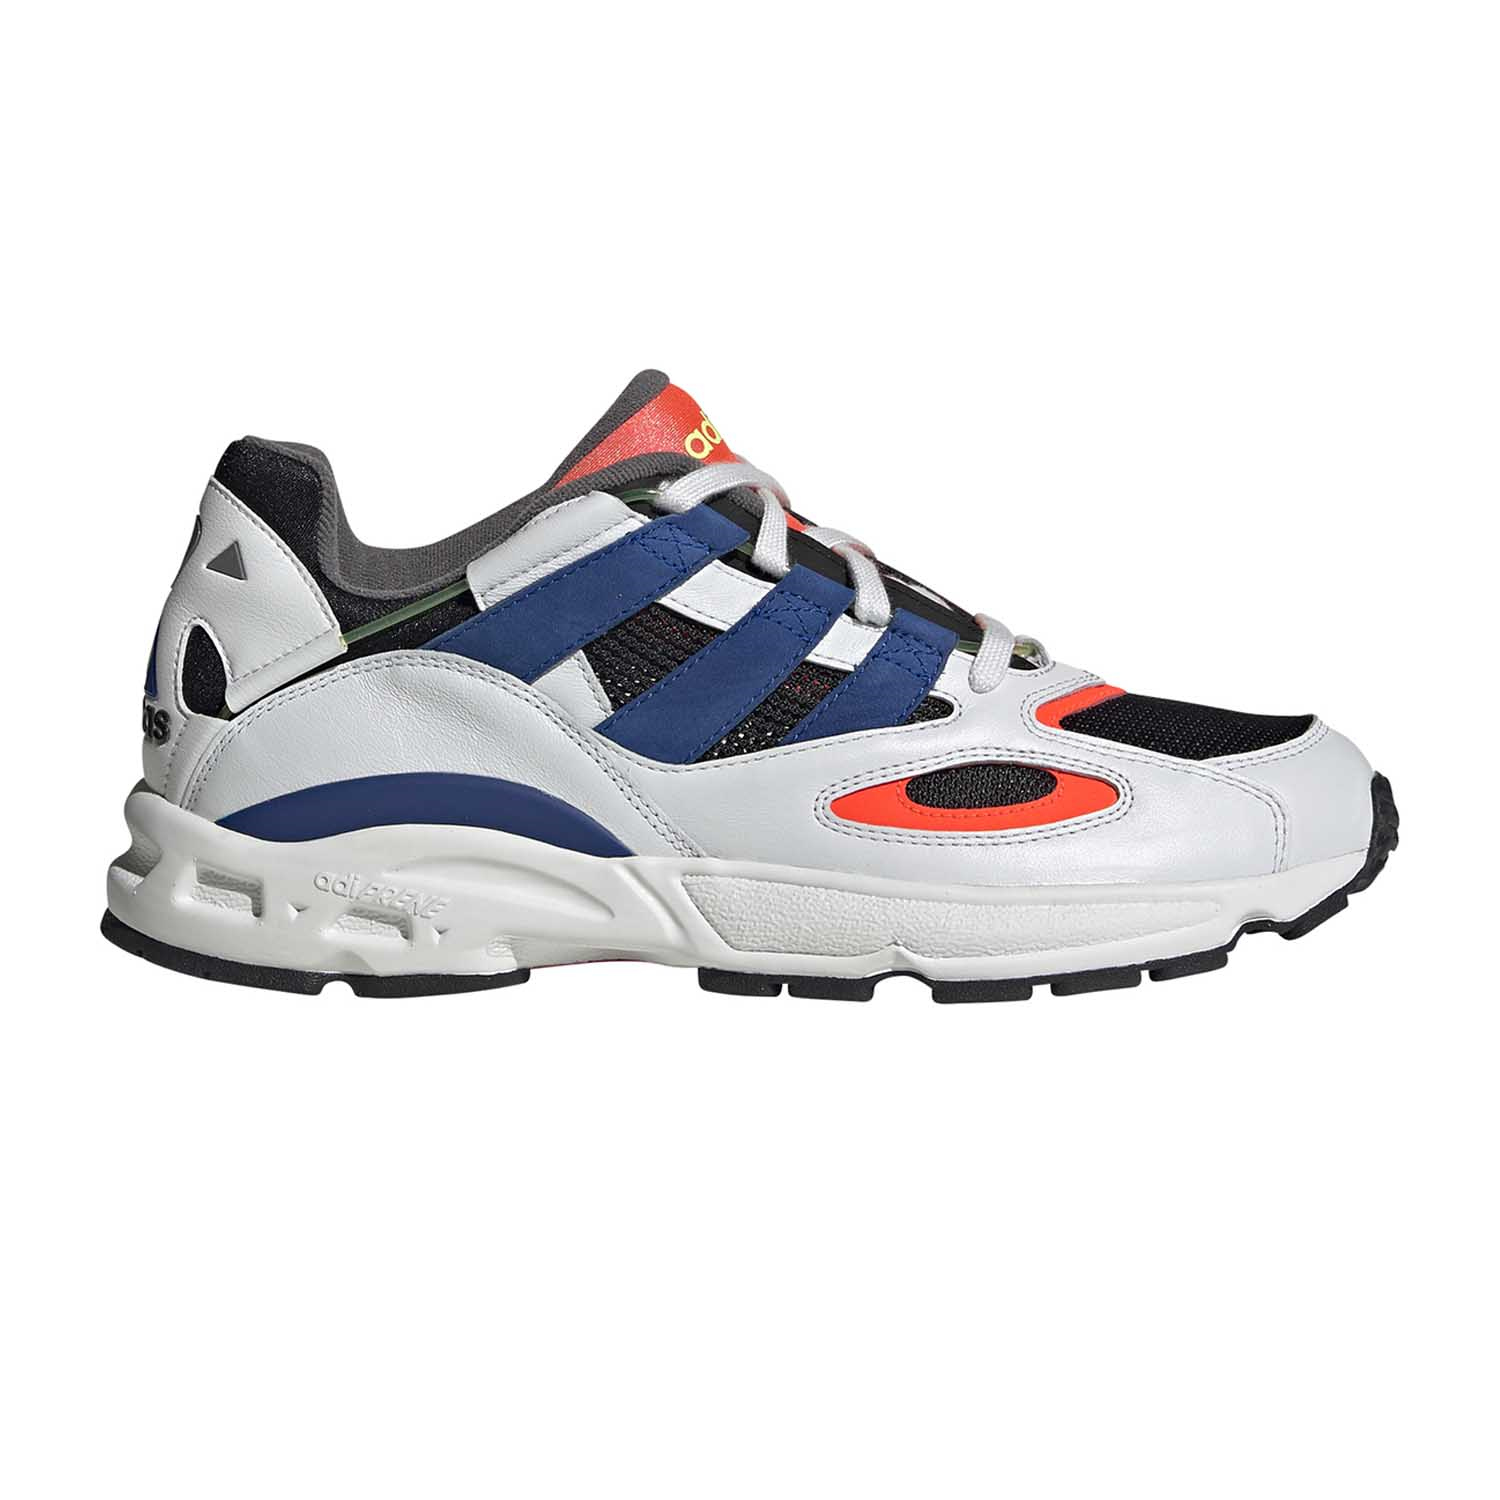 01c39180 Υποδήματα στο κατάστημα All About Sneakers - Roe Shoes Collection